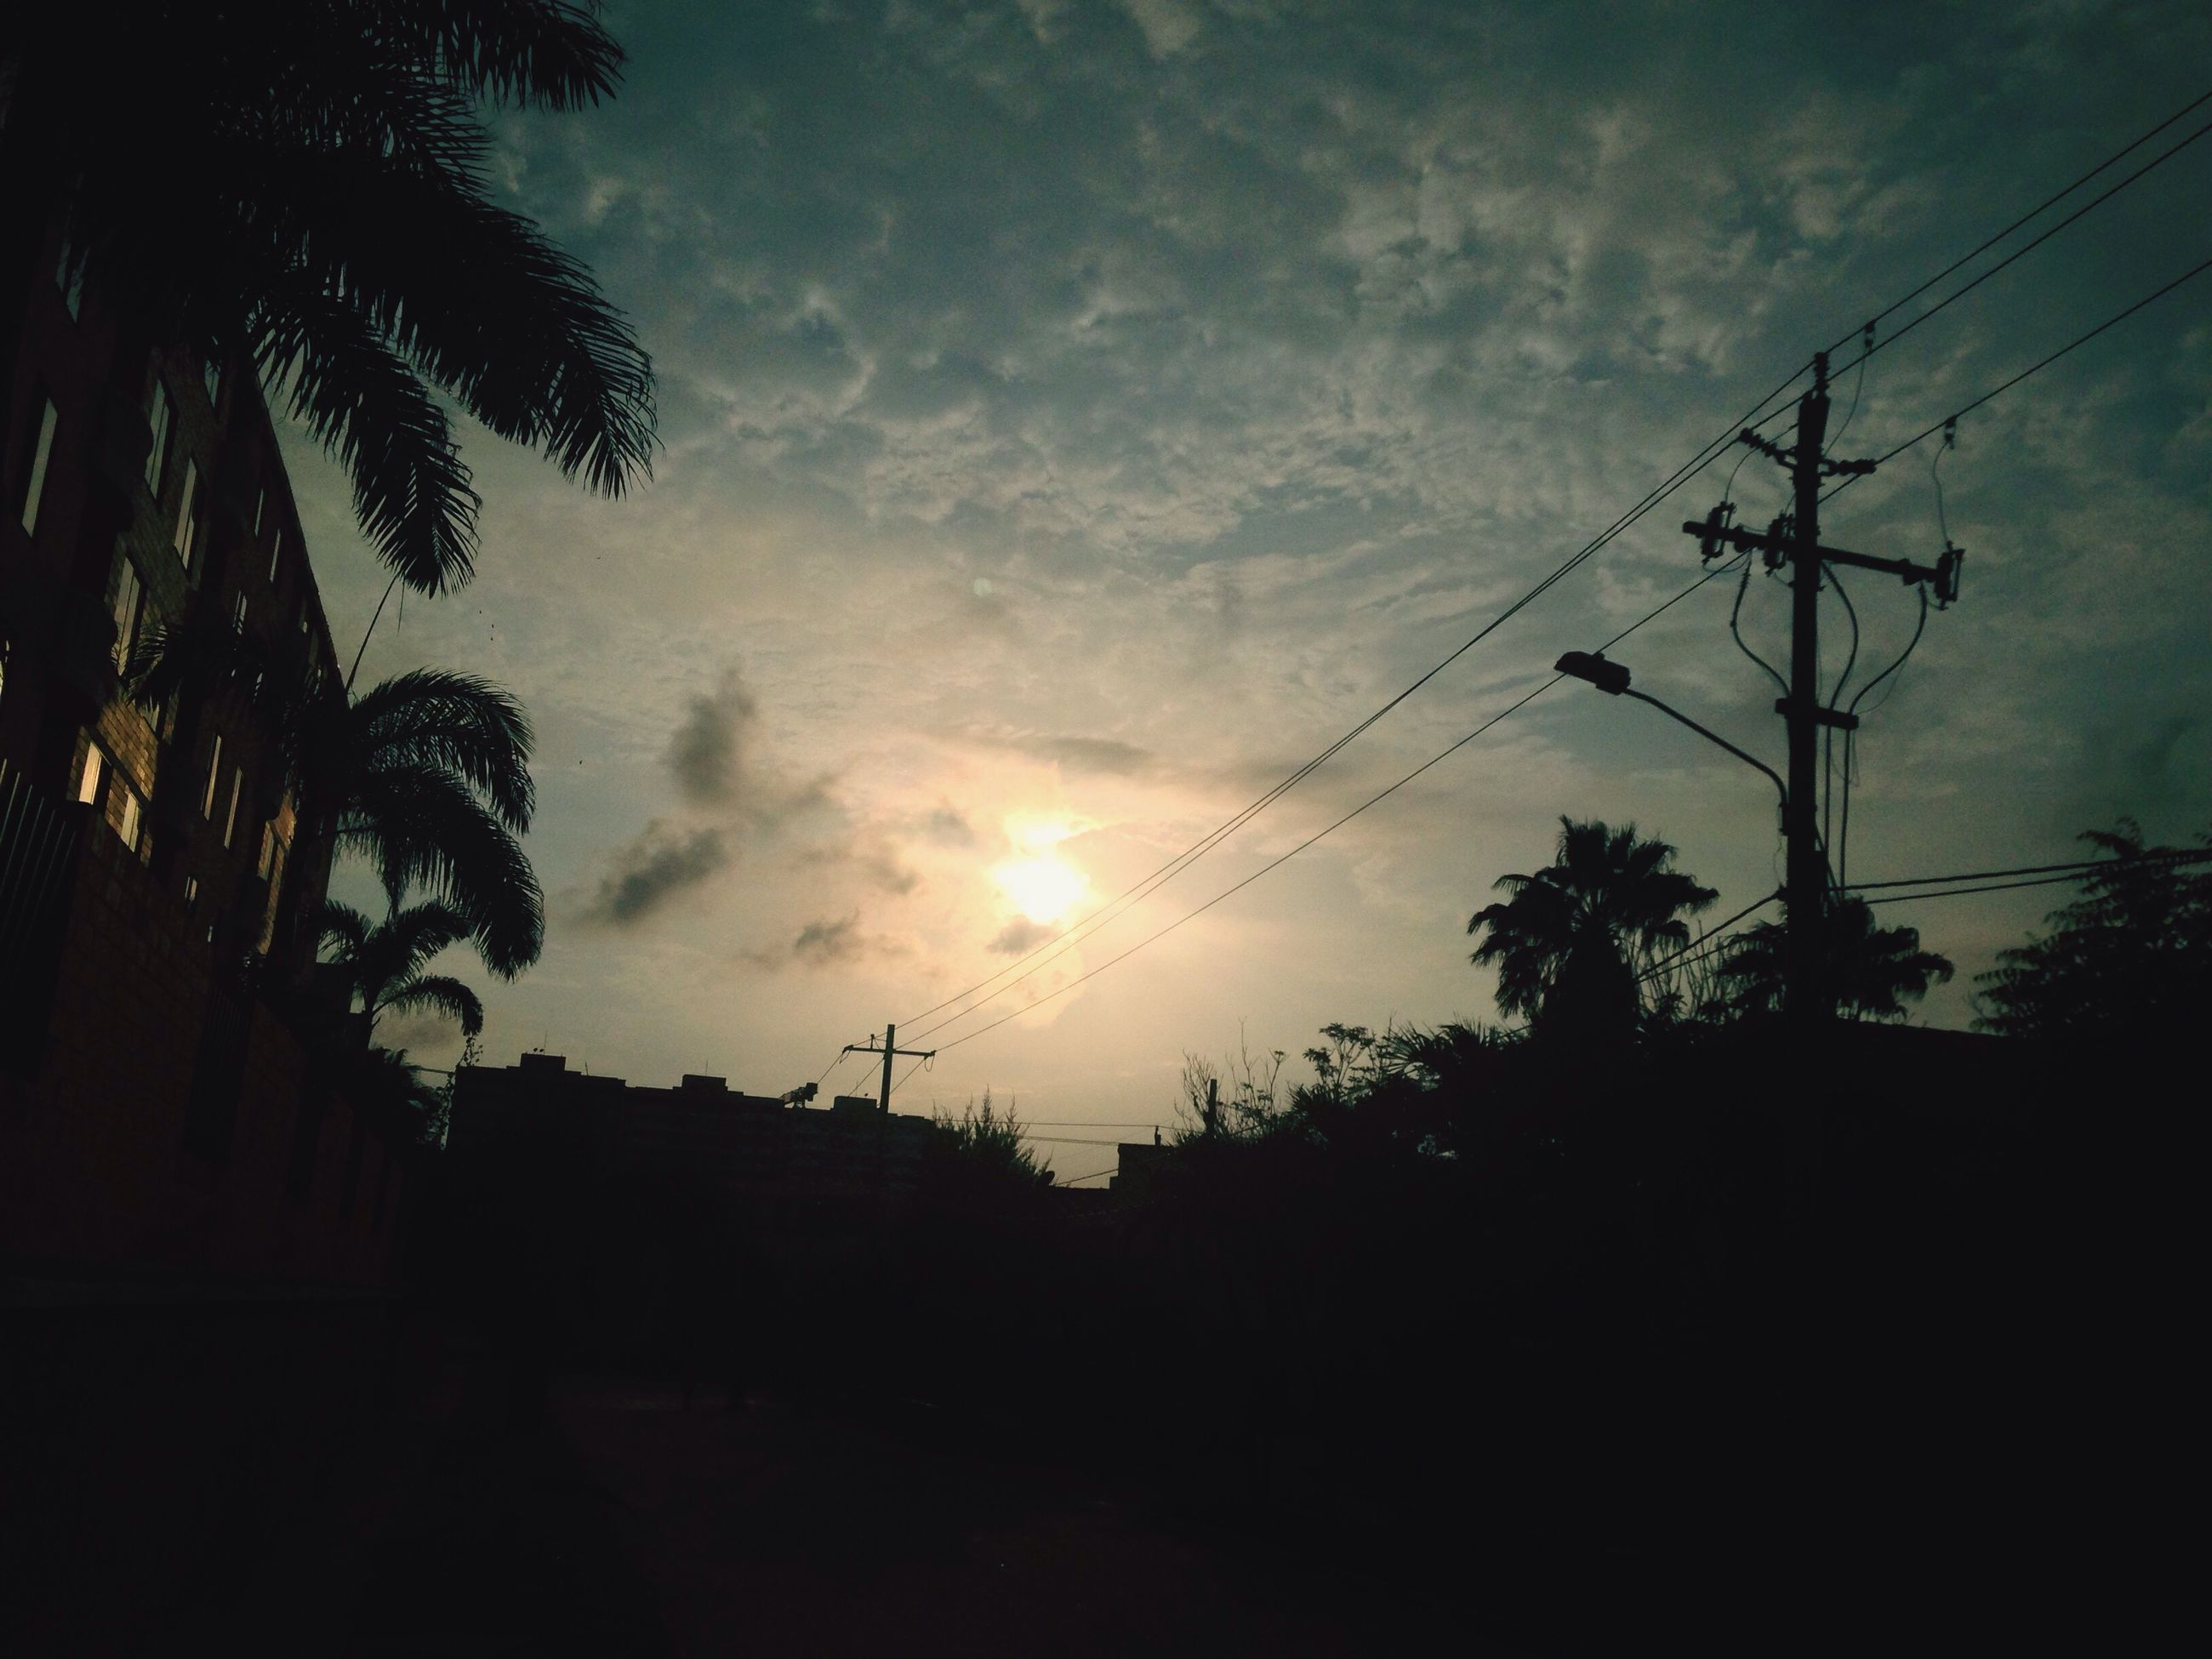 silhouette, sky, sunset, tree, low angle view, cloud - sky, power line, electricity pylon, cloudy, nature, sun, tranquility, cloud, beauty in nature, dusk, electricity, dark, scenics, tranquil scene, outdoors